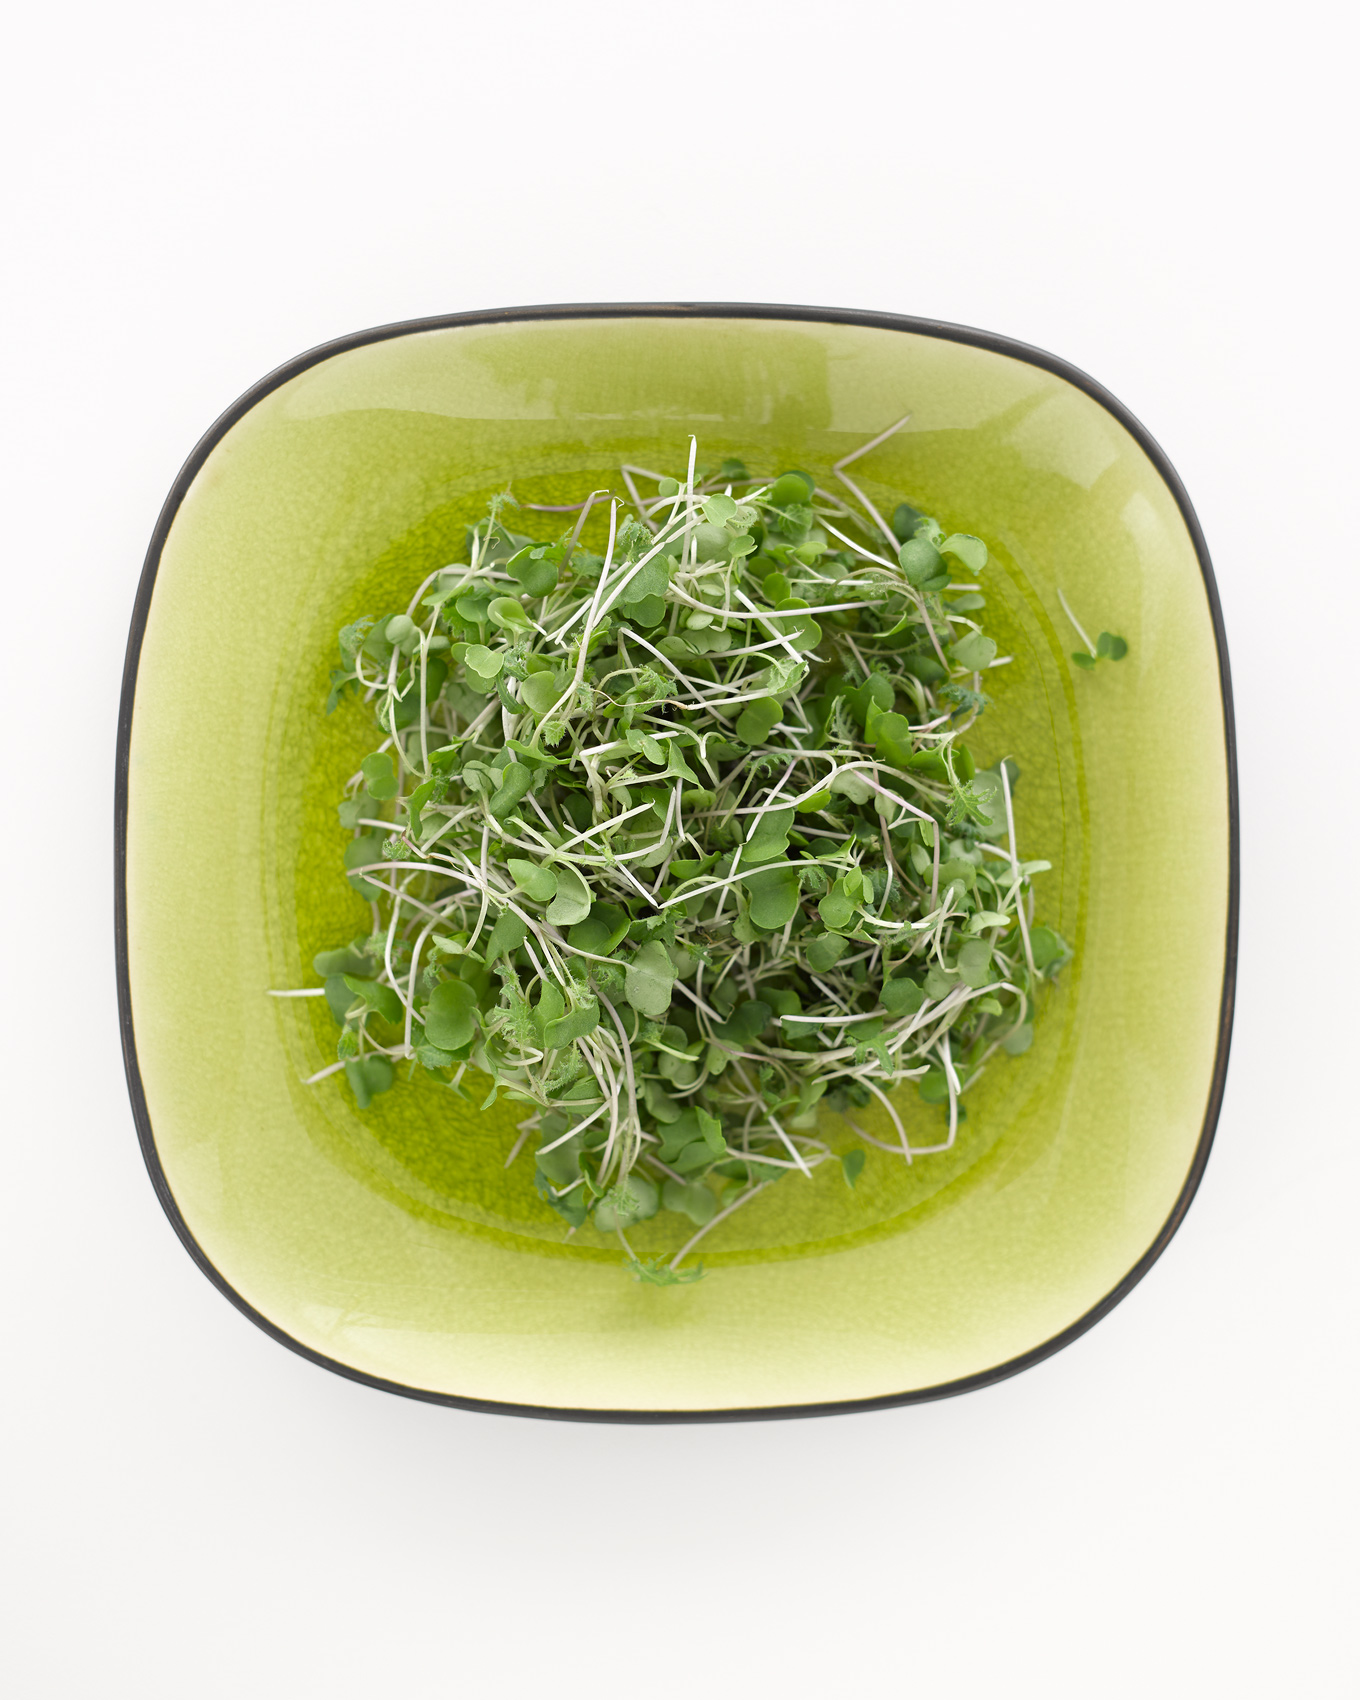 bublys-photography-sprouts-plate-web